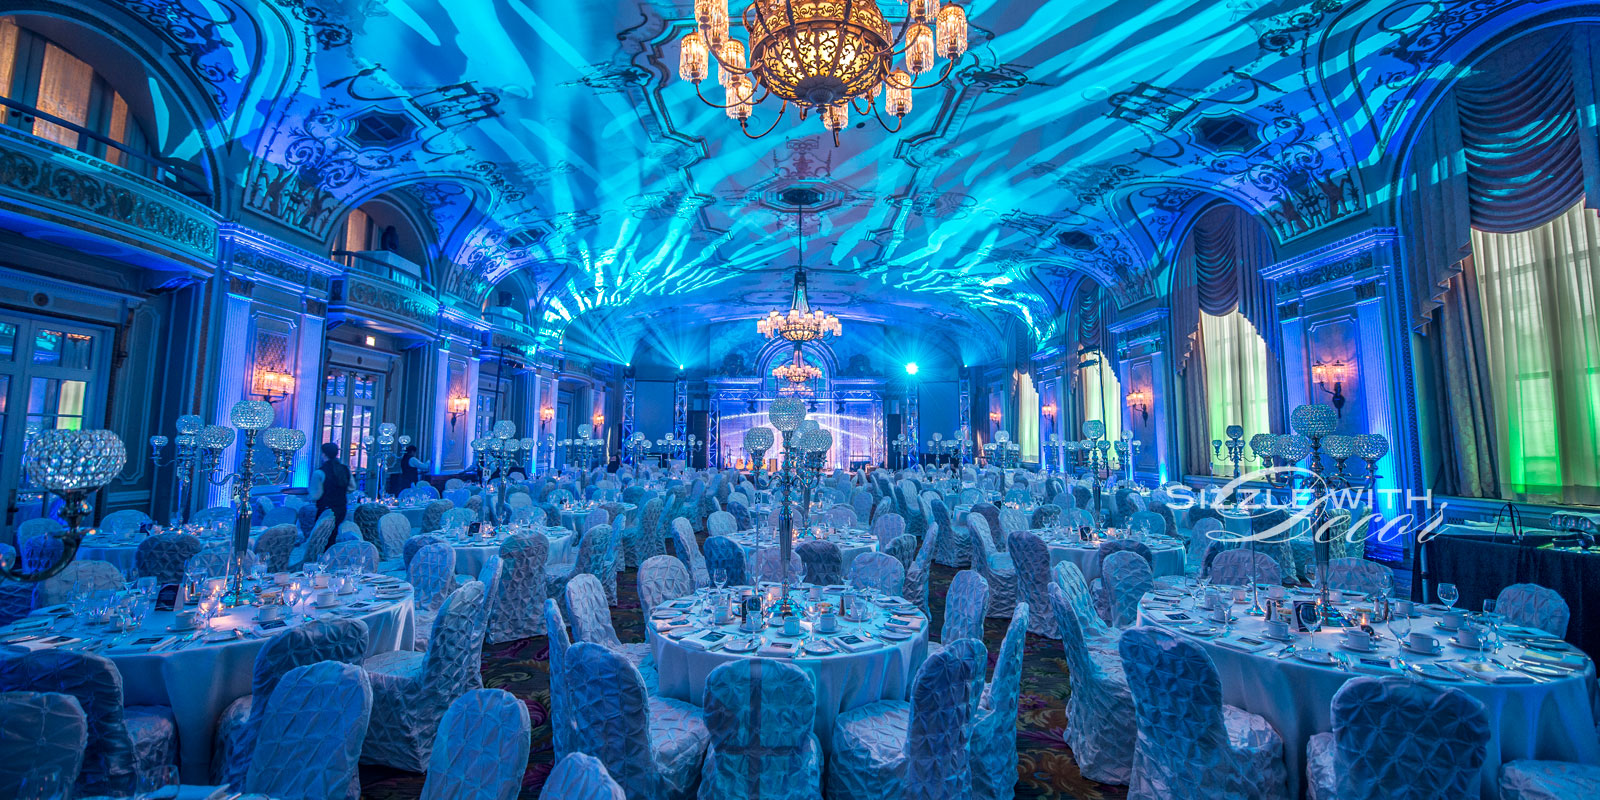 Sizzle with decor wedding and event decor ottawa sliderimageblue junglespirit Images